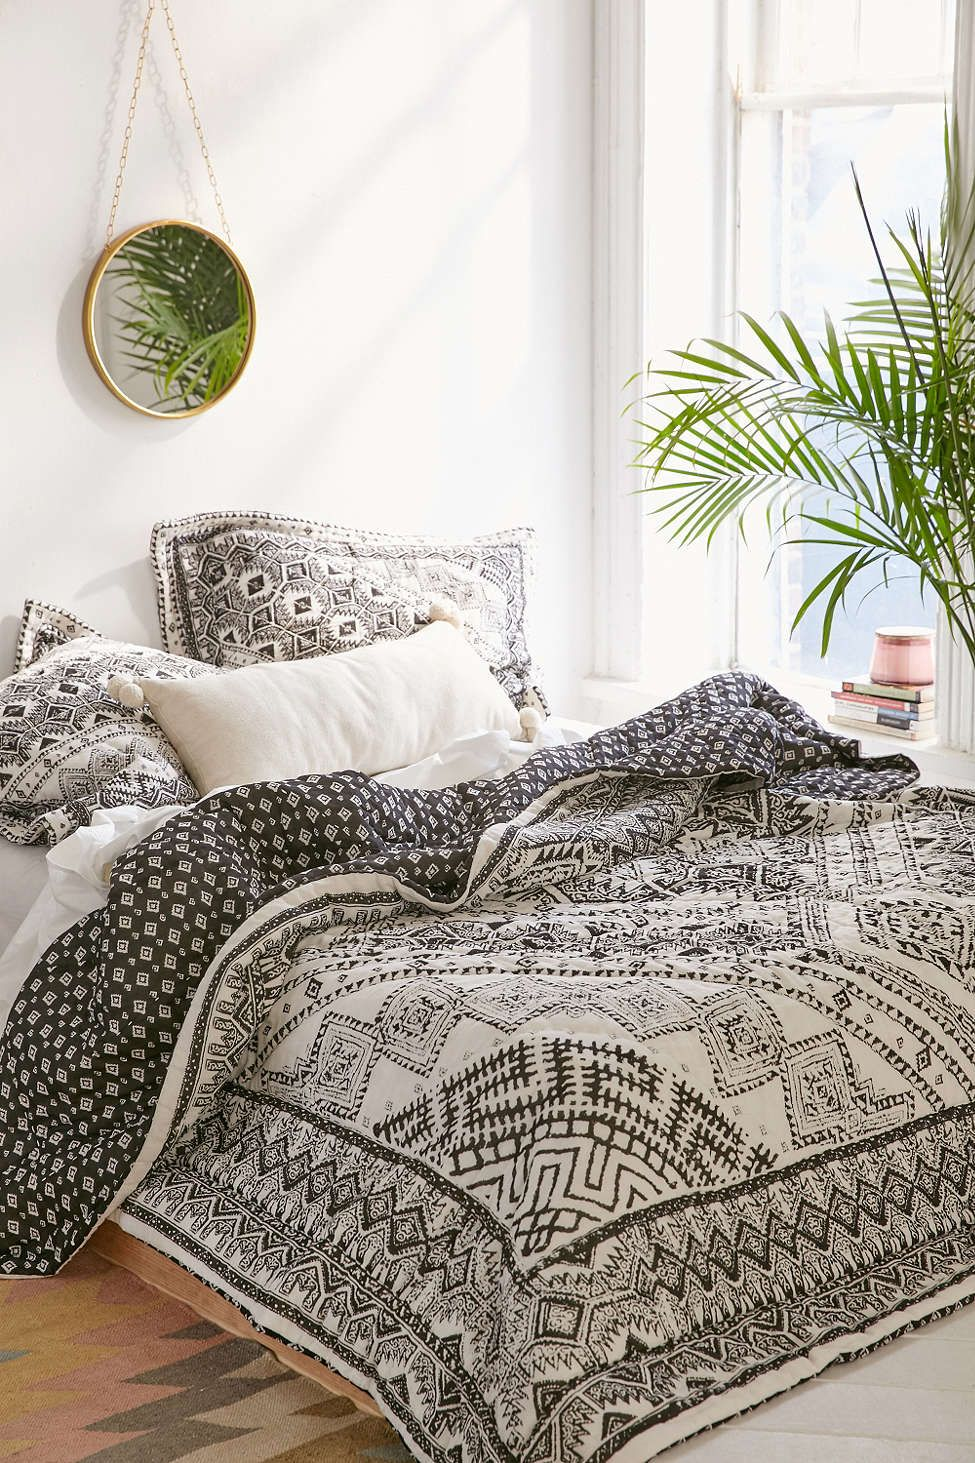 Magical Thinking Echo Graphic Quilt Bedroom Inspirations Room